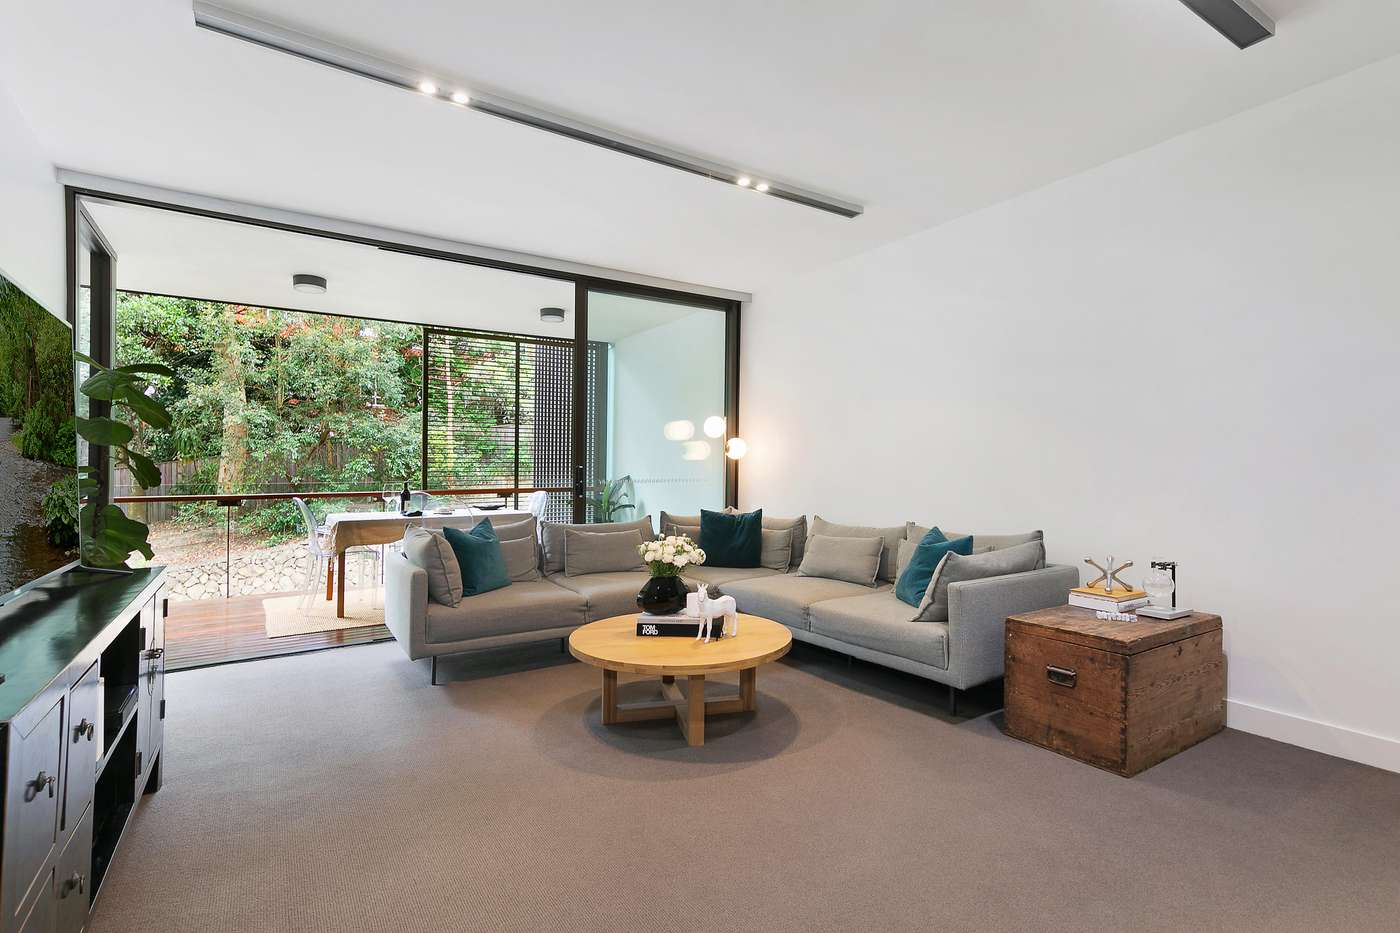 Main view of Homely apartment listing, 6/8 Nola Road, Roseville, NSW 2069